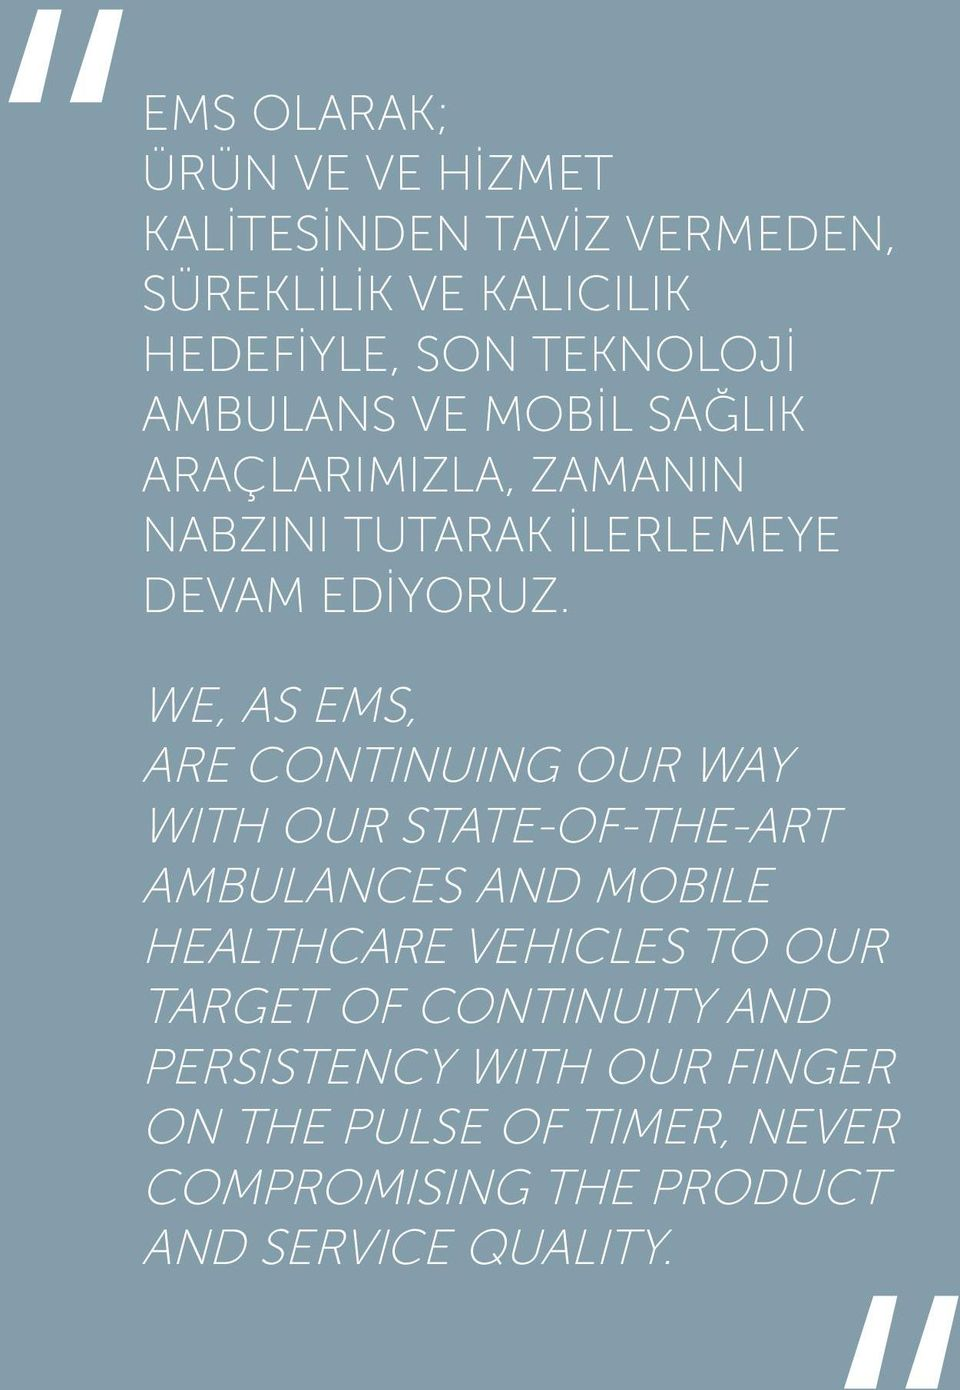 WE, AS EMS, ARE CONTINUING OUR WAY WITH OUR STATE-OF-THE-ART AMBULANCES AND MOBILE HEALTHCARE VEHICLES TO OUR